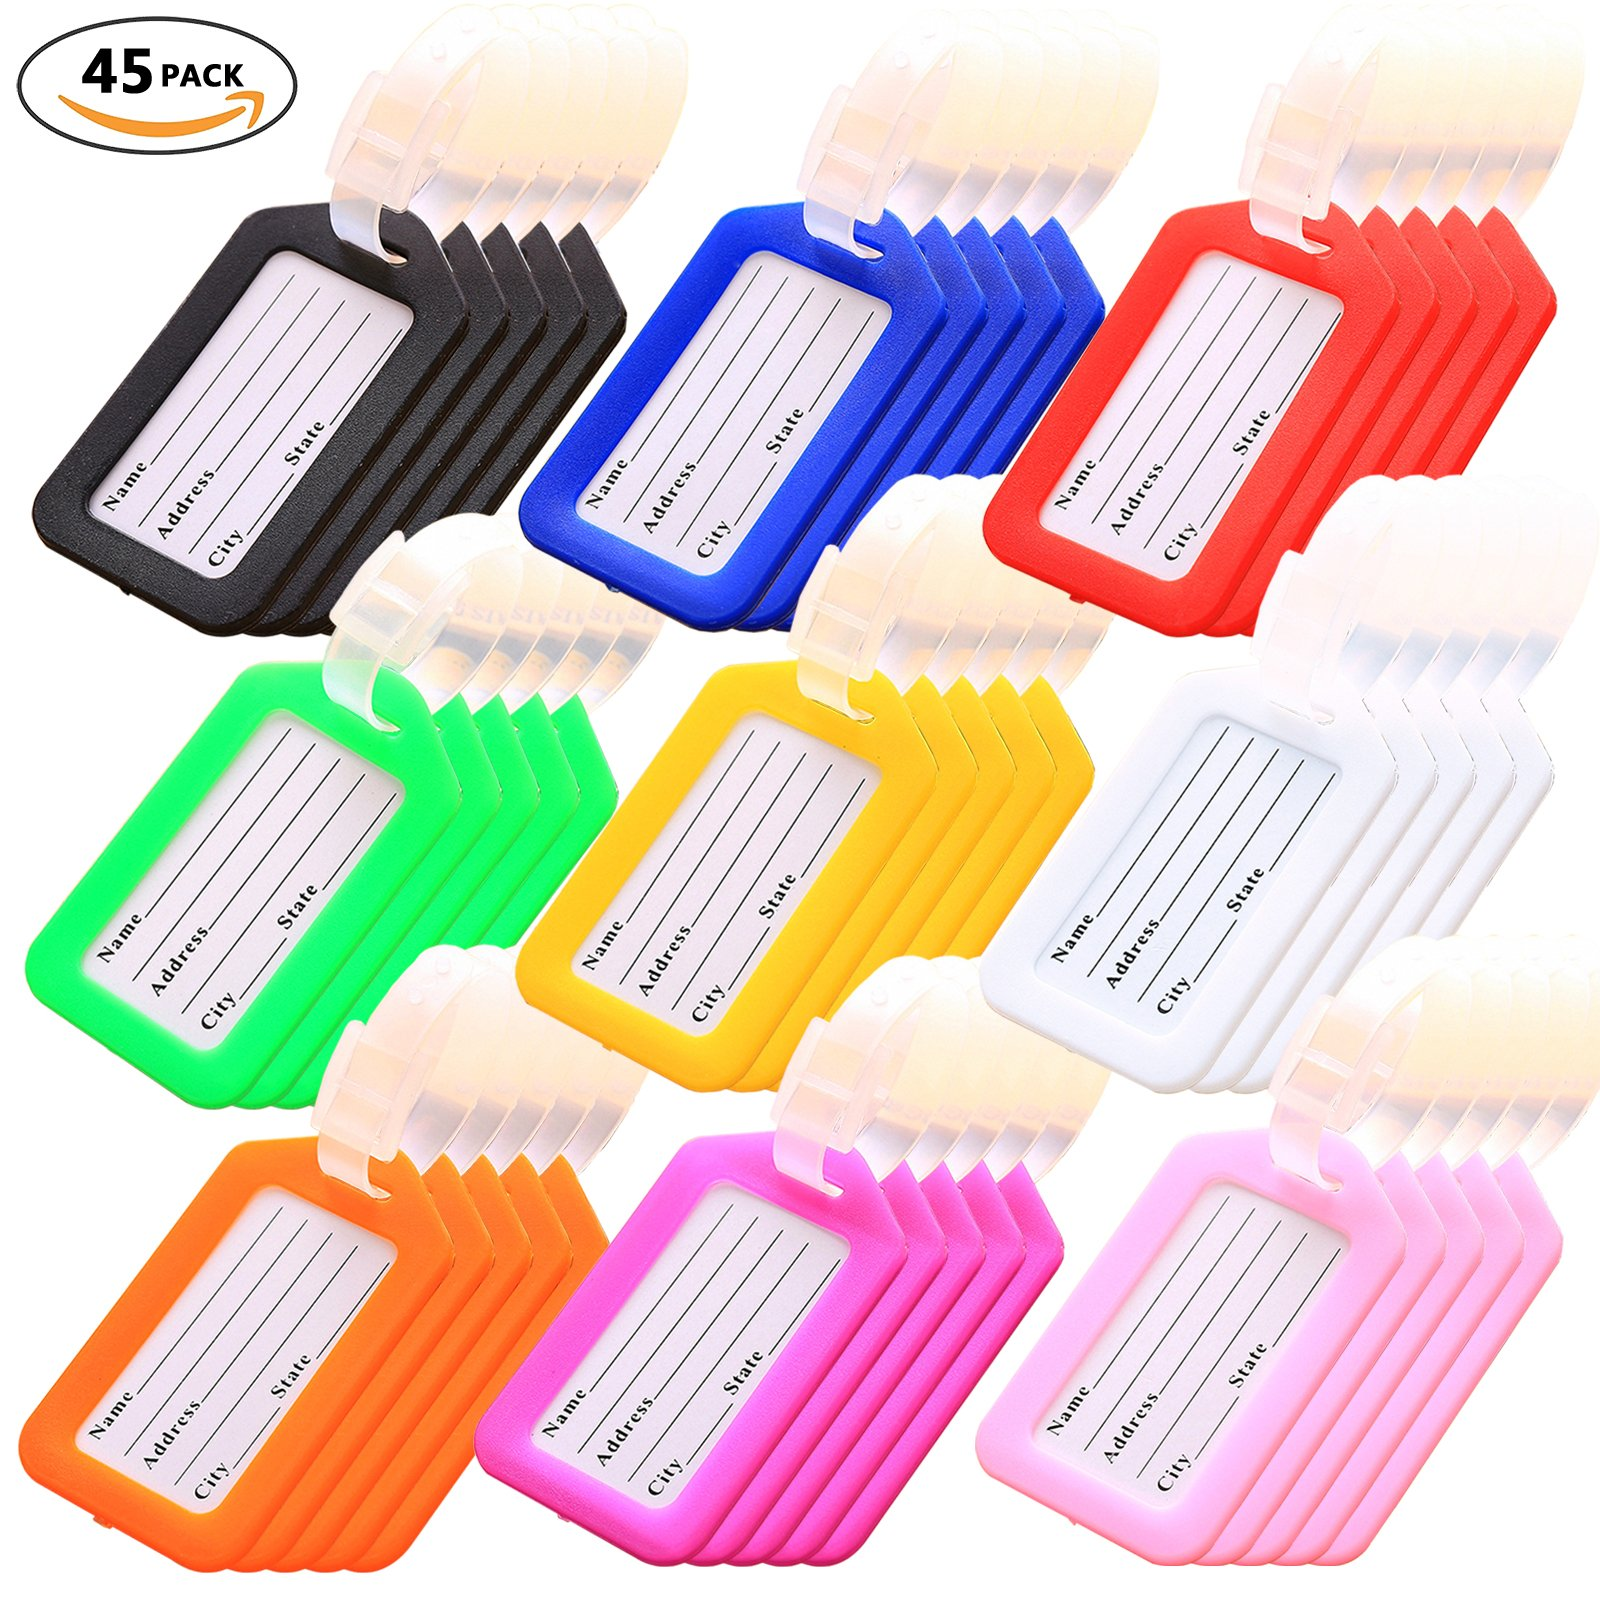 Key Tags, Identifiers Labels For Luggage Suitcases Bags, PVC Travel Baggage Tag Set 45 Pack